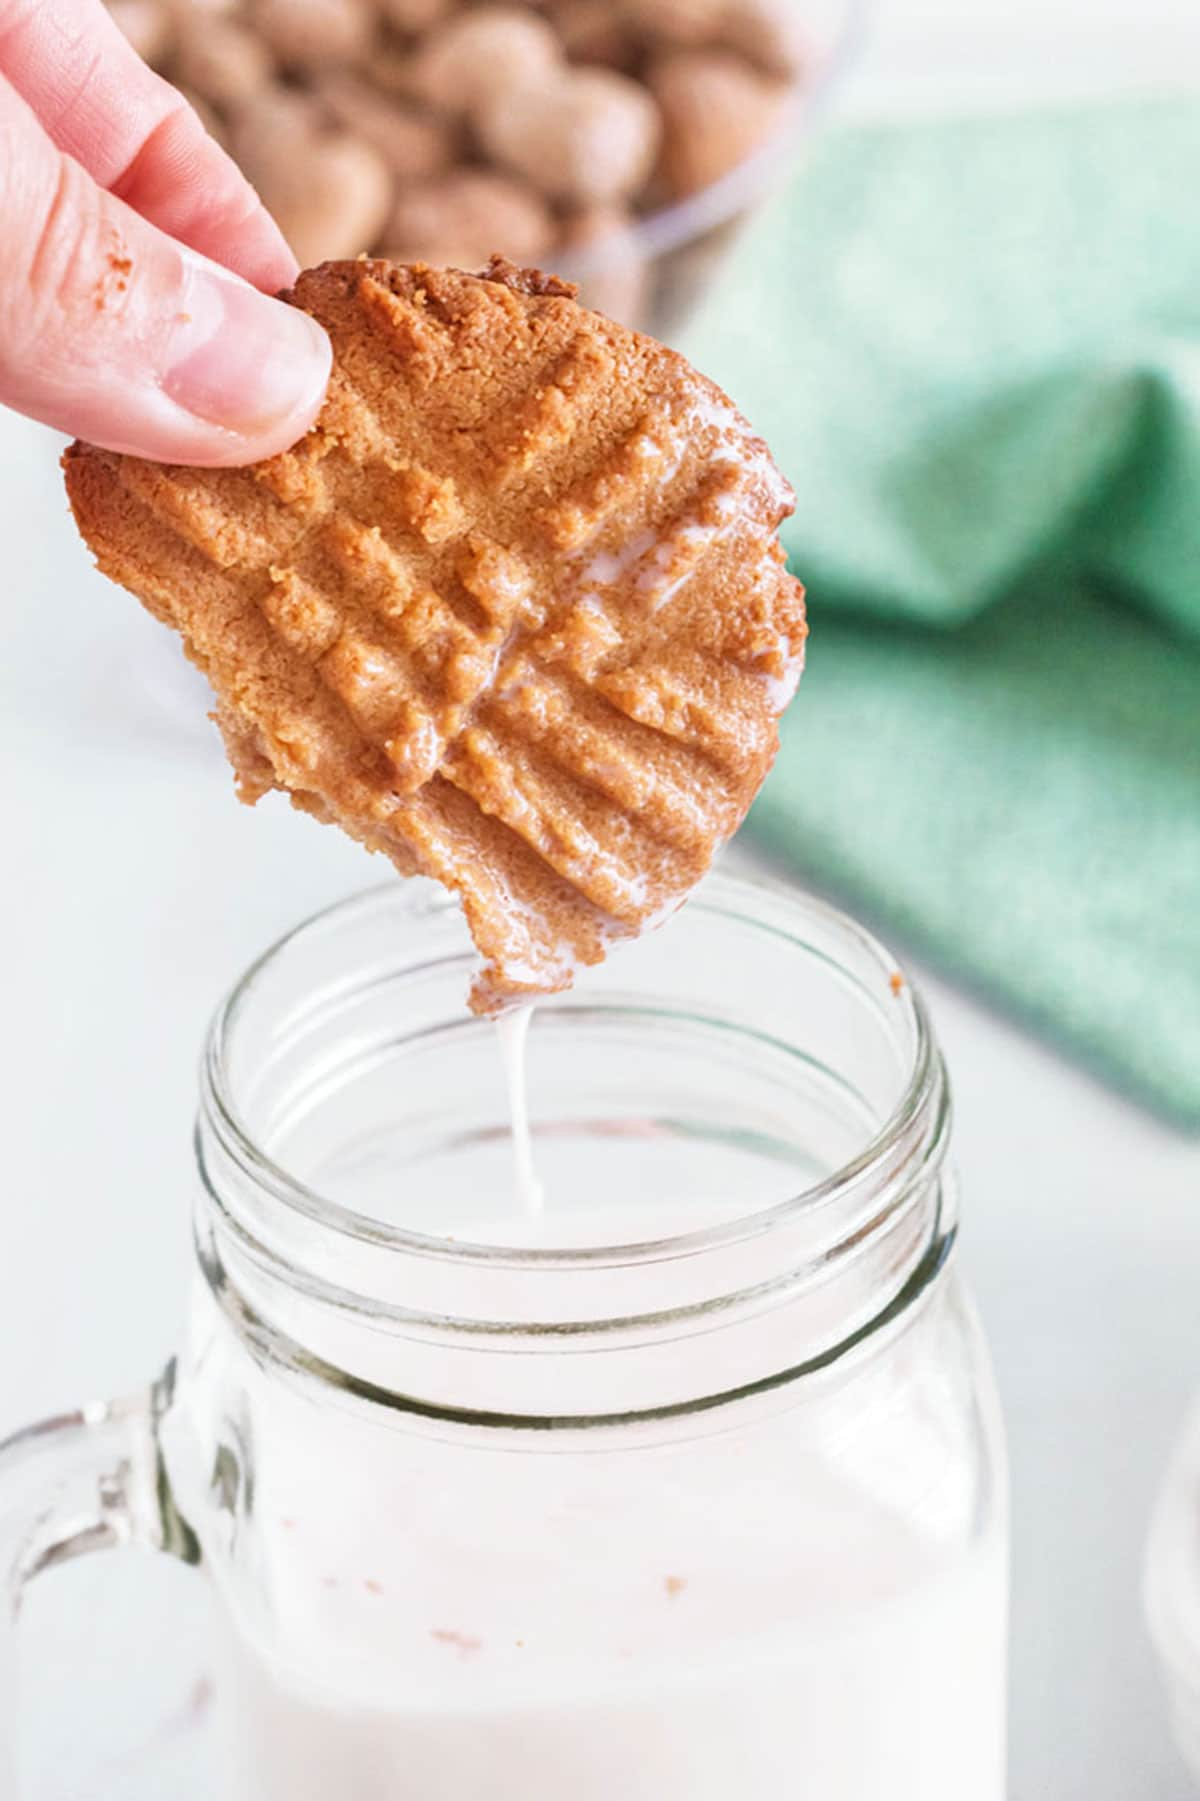 Dunking a cookie in a glass of milk